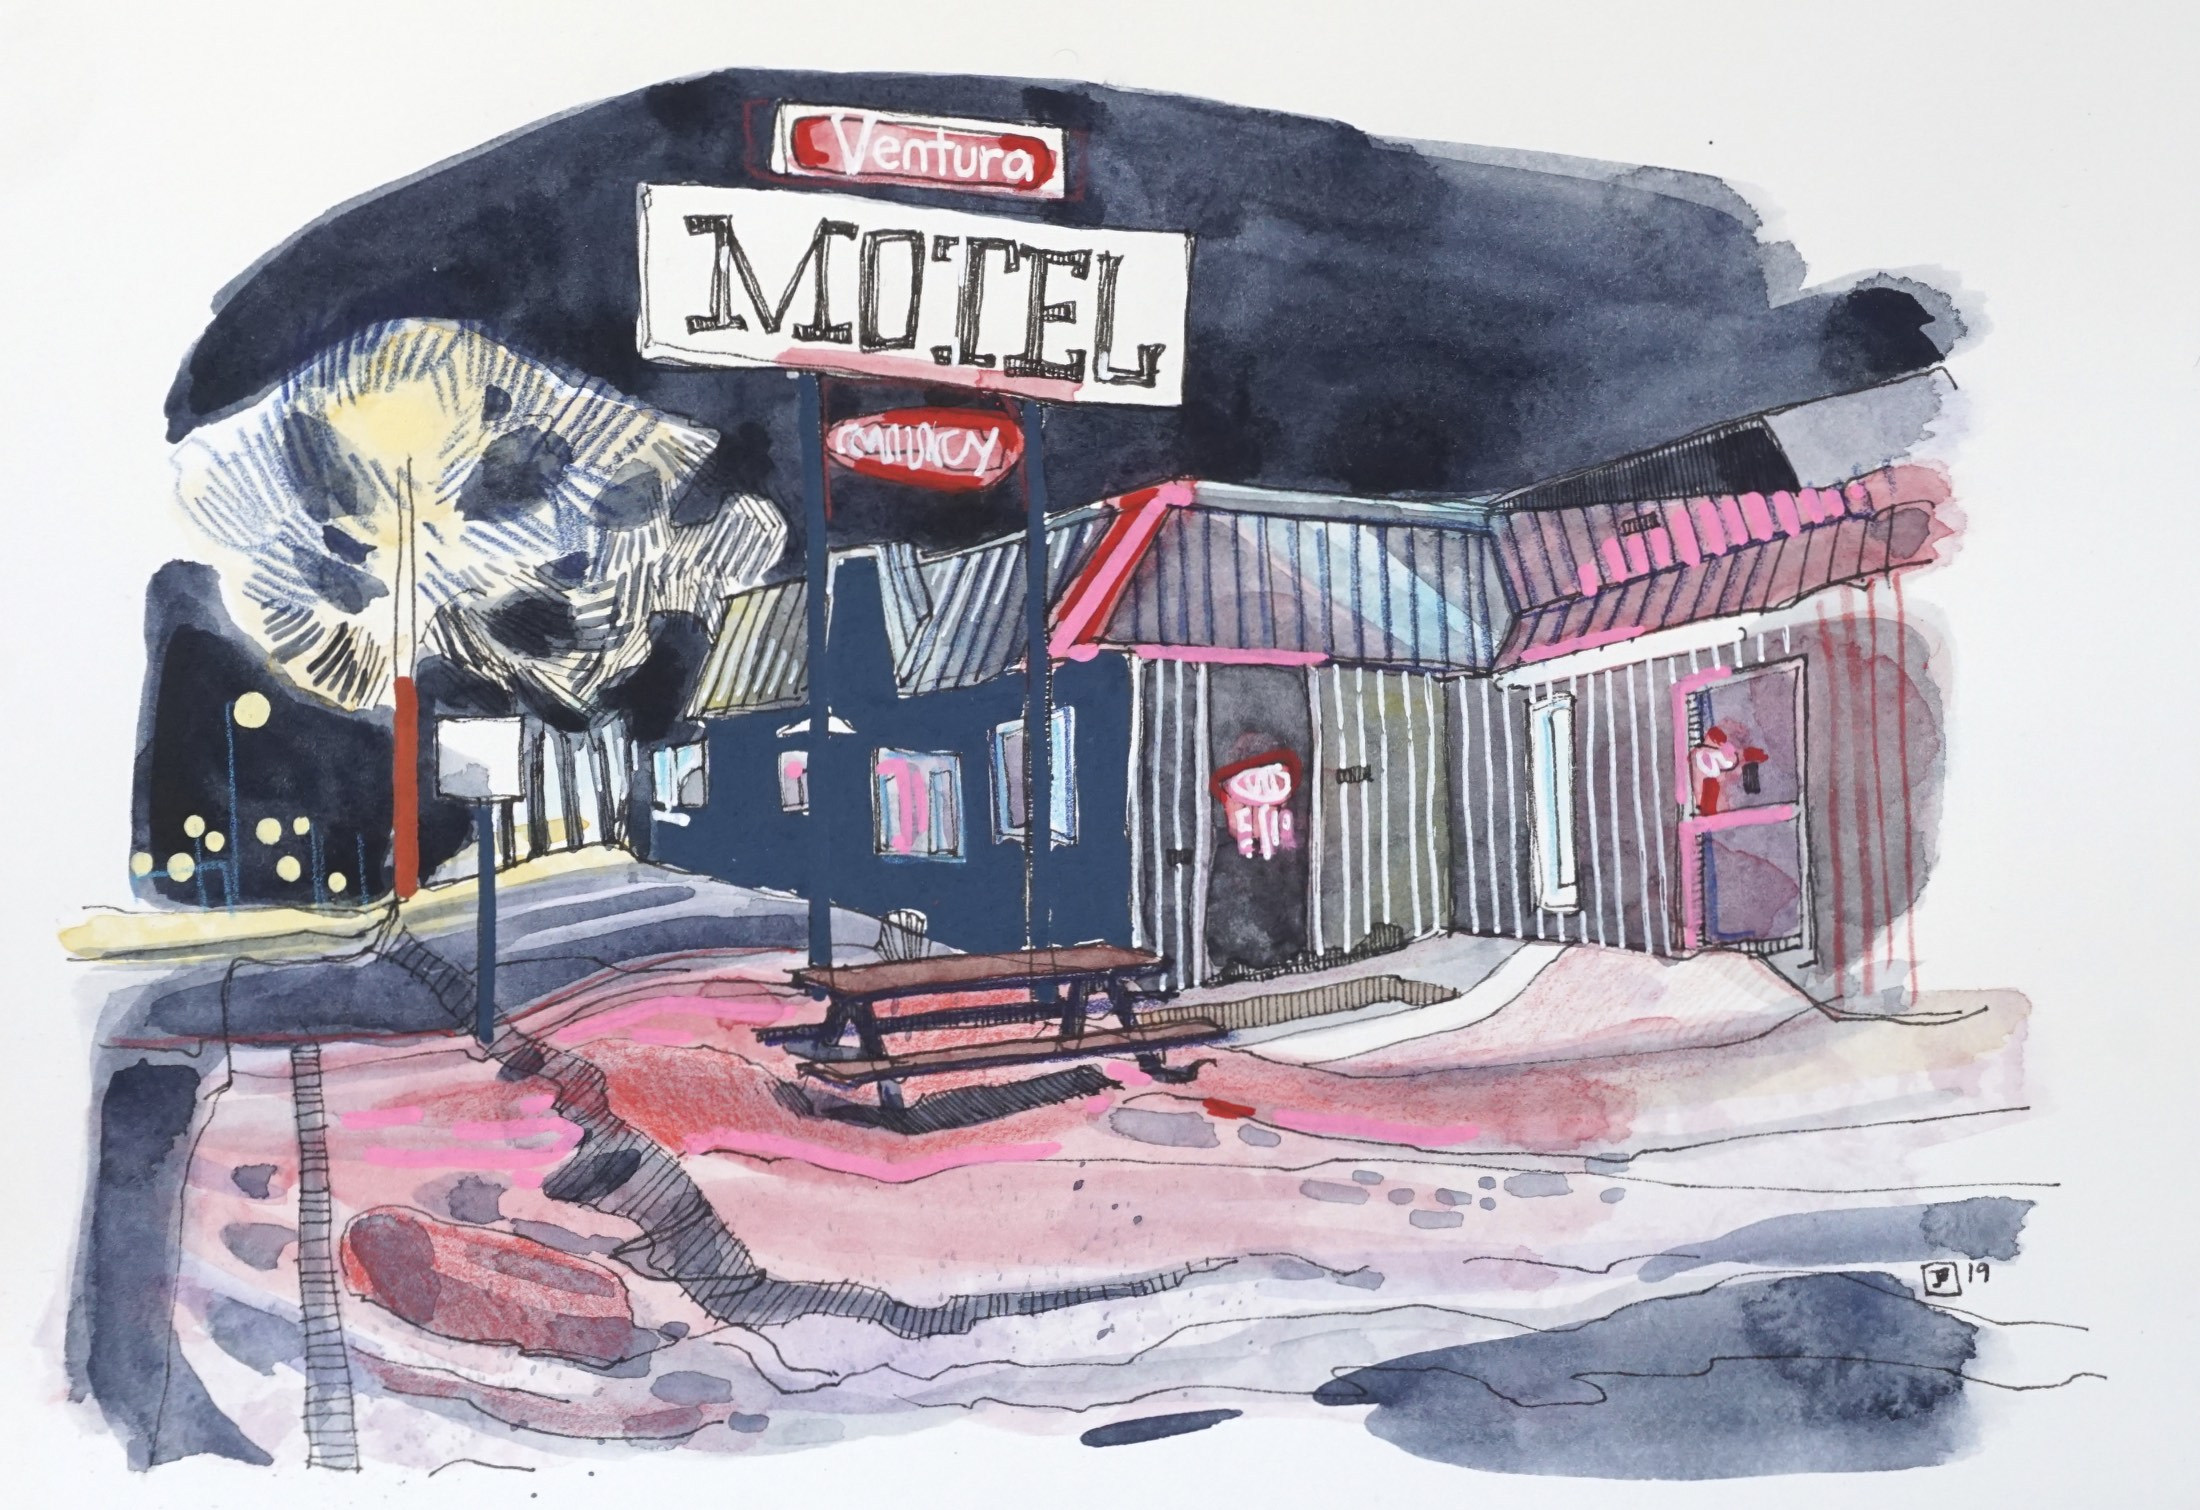 ventura motel, vermilion AB,  mixed media on hot pressed paper, 7x10 inches, $100 + GST,  2019